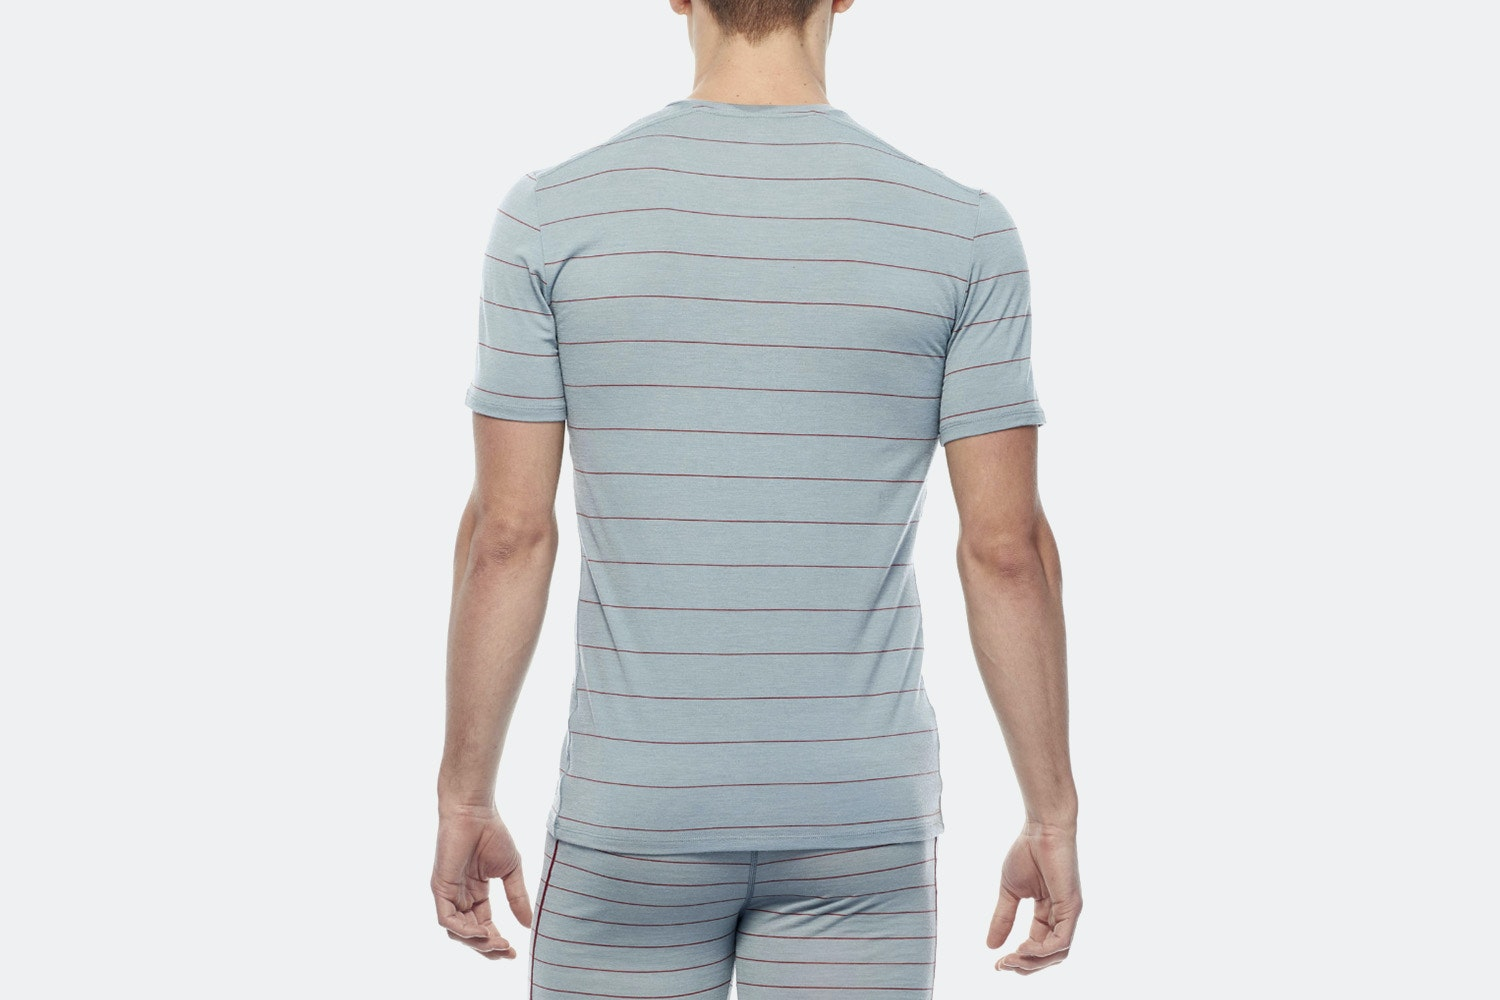 Icebreaker Anatomica Men's Base Layers